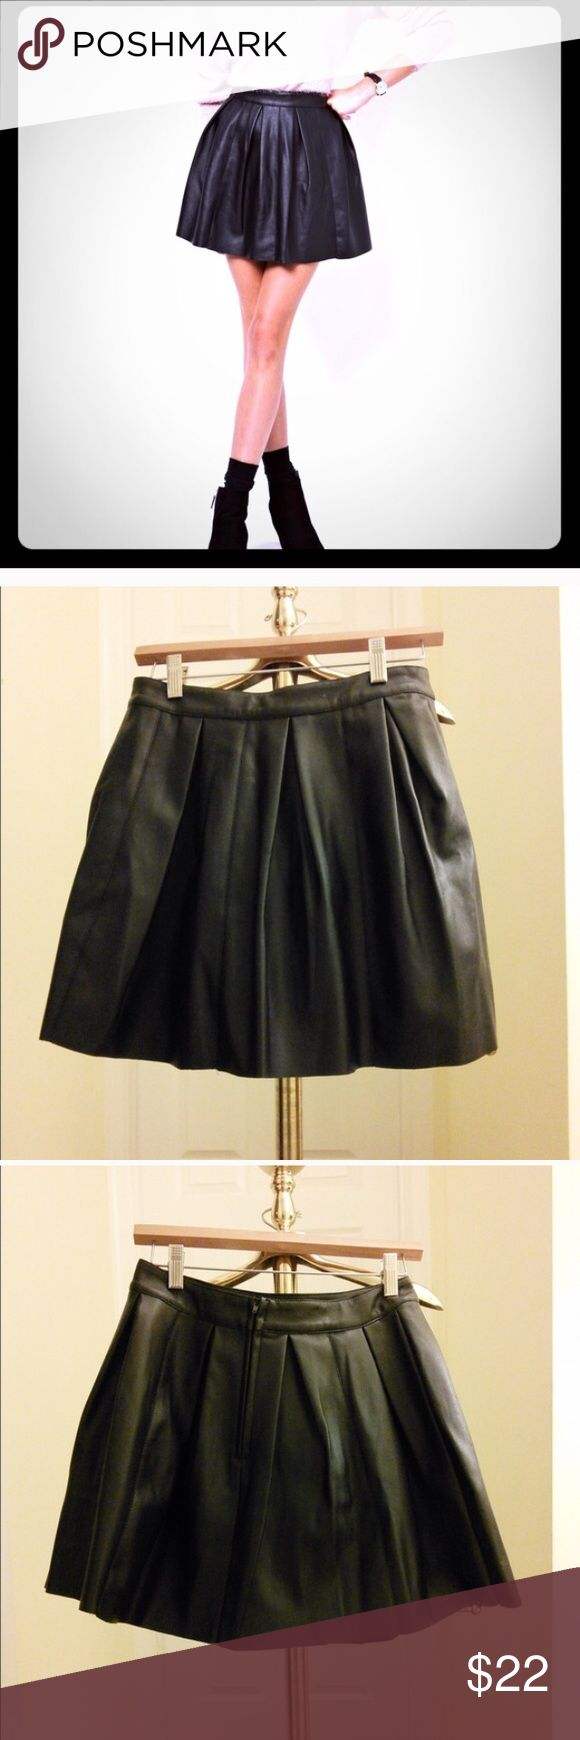 ASOS vegan leather skater skirt Re-poshing because it didn't fit me. Size 6. Was never worn but no tags. Super cute for the fall ASOS Skirts Circle & Skater